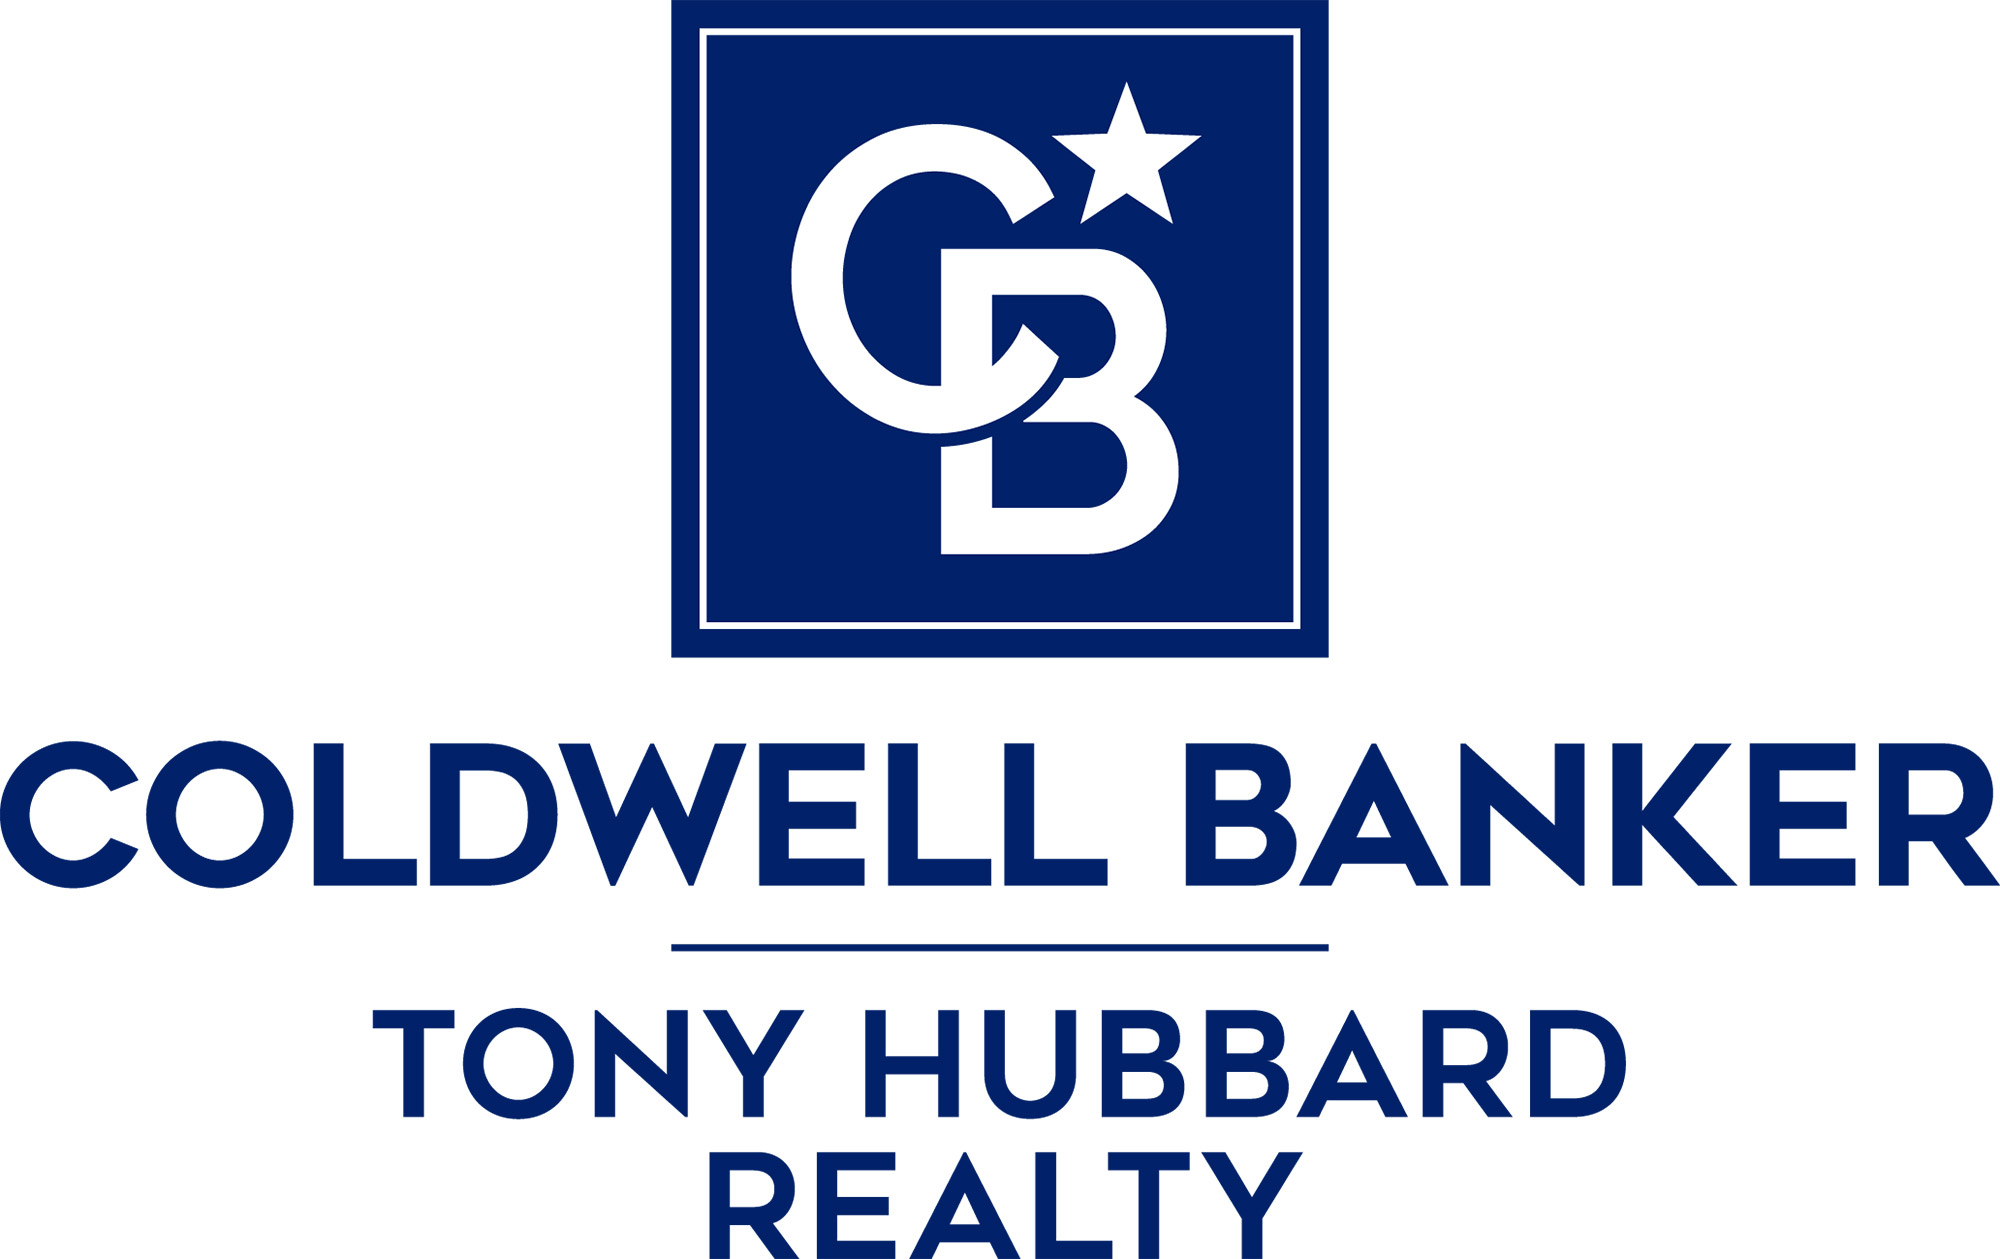 Tracy Summers - Coldwell Banker Tony Hubbard Logo